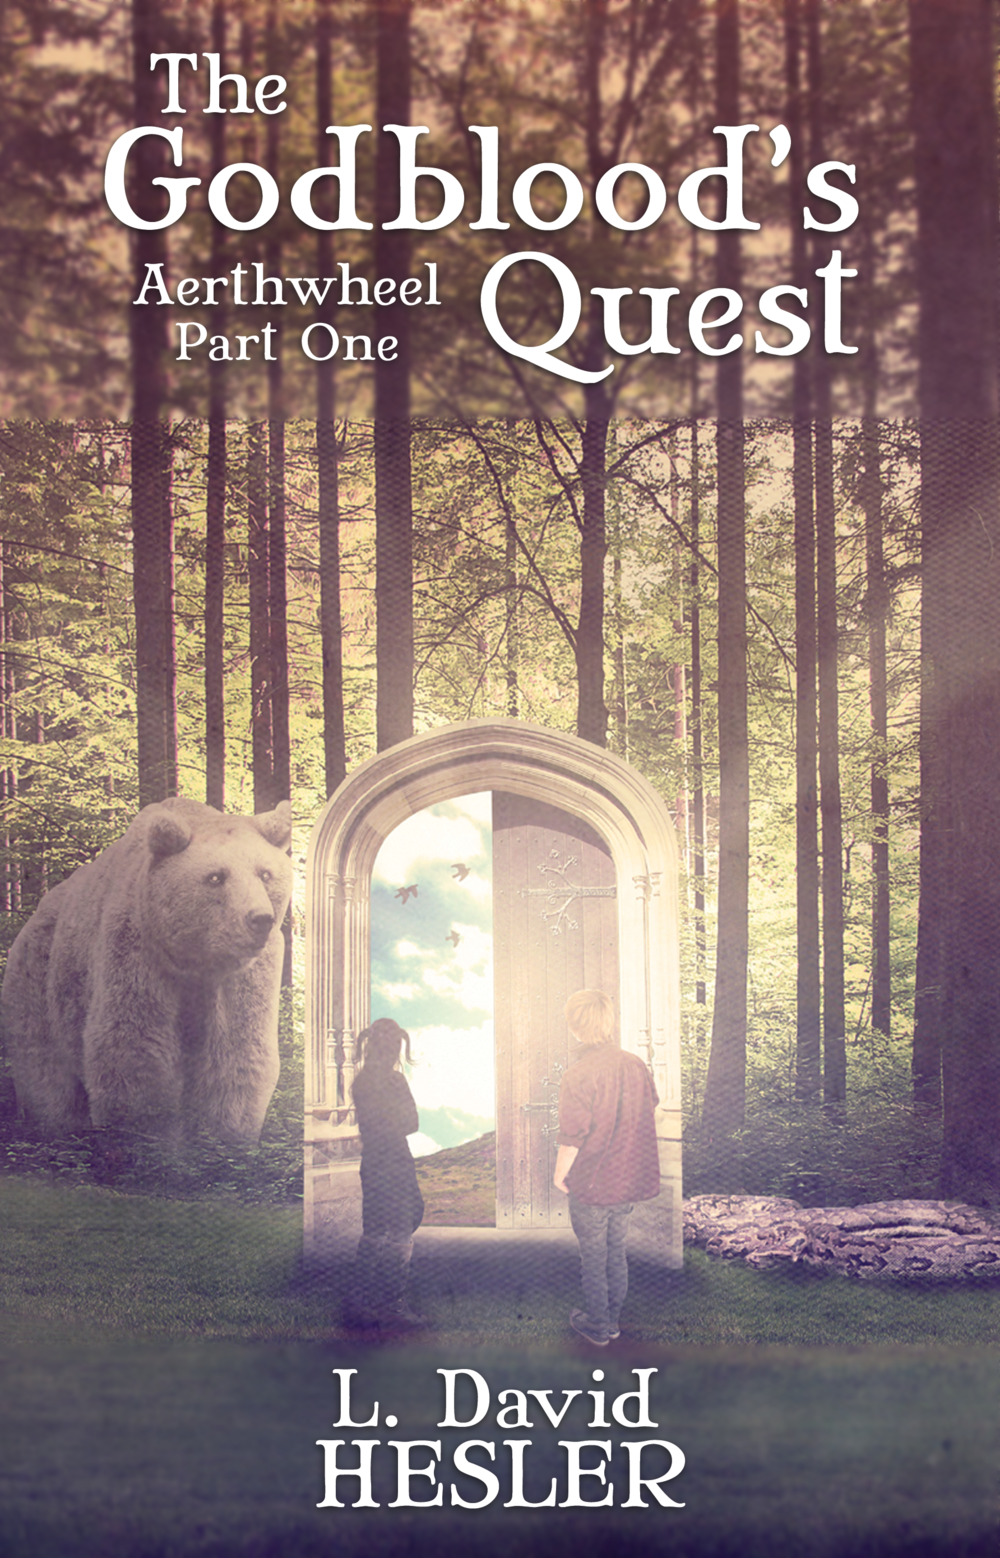 """The Godblood's Quest - (Formerly """"Children of Aerthwheel"""")Available in the following formats:eBook & Print on AmazoneBook & Print on Barnes & NobleeBook for Apple Books, Kobo, & Others"""